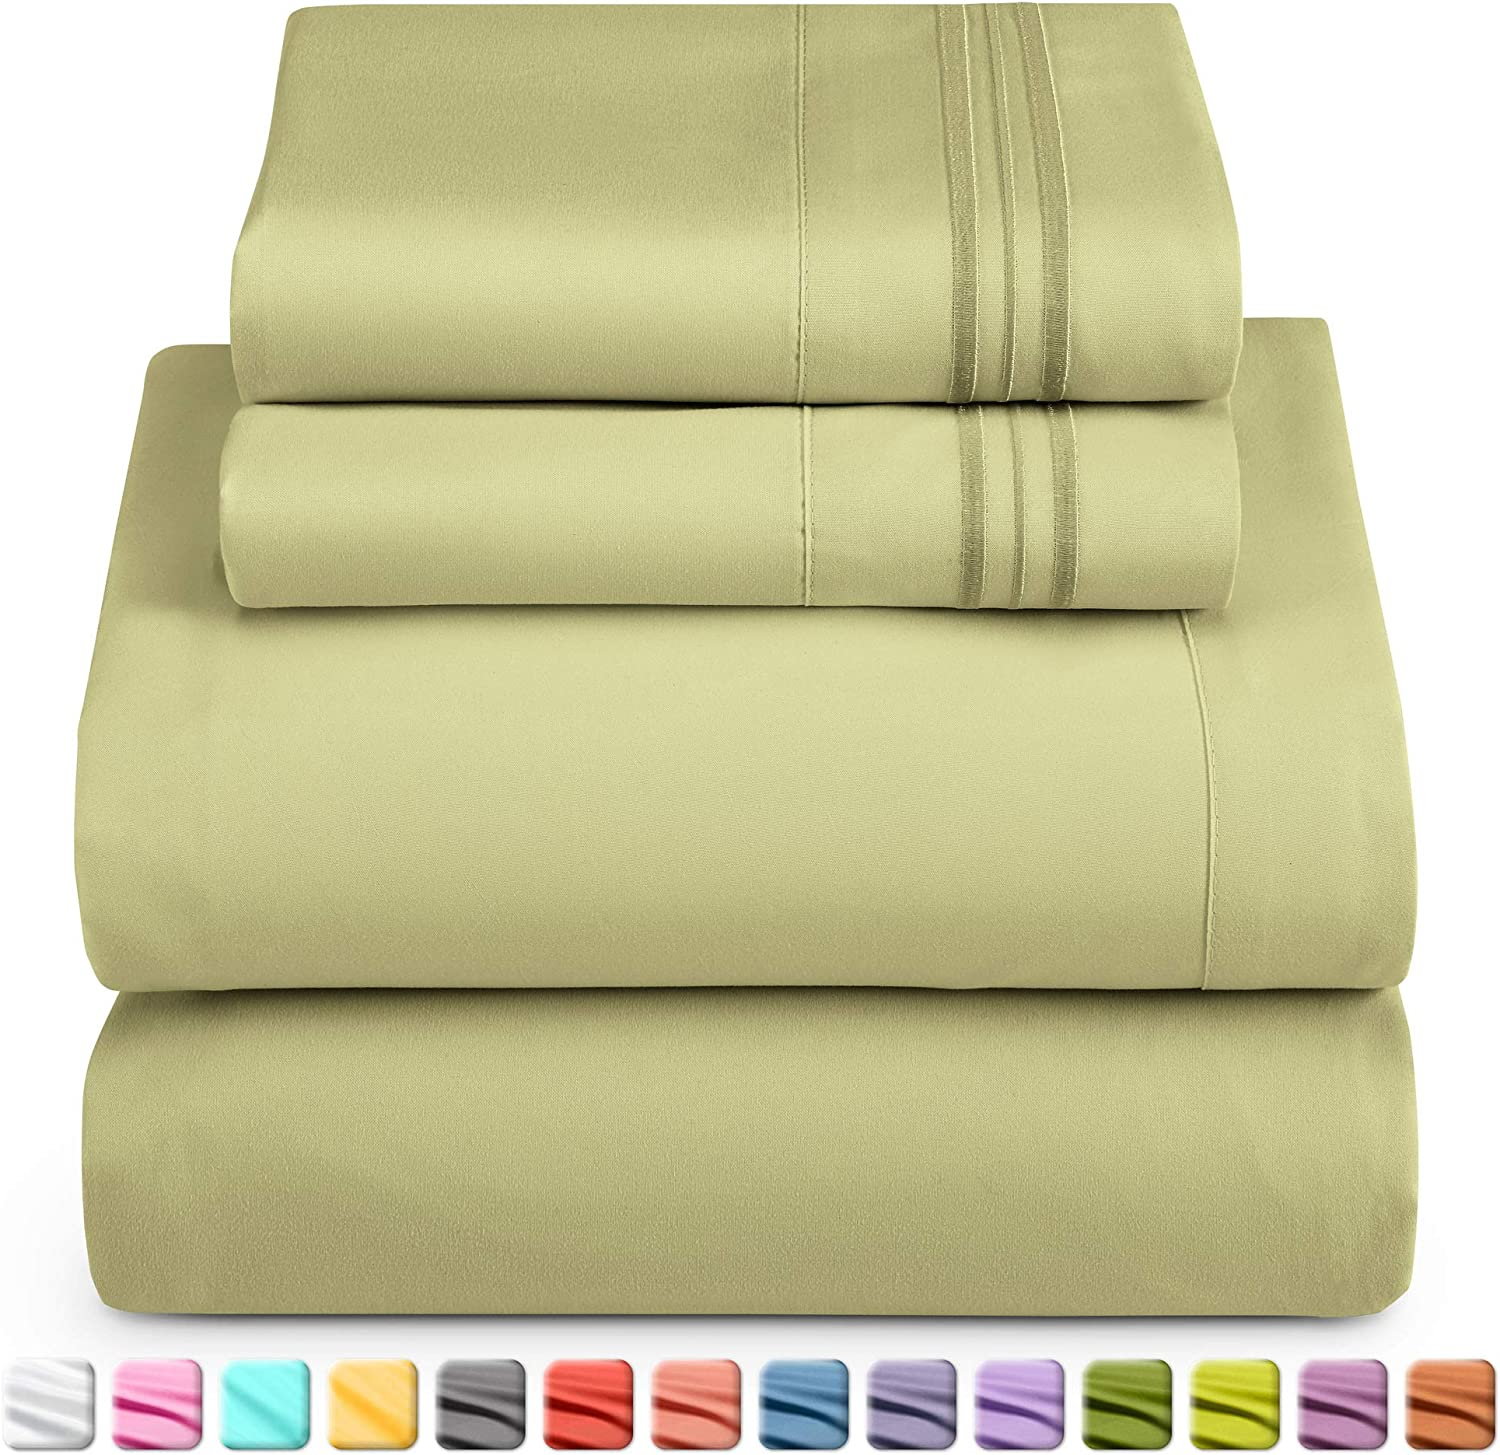 Nestl Deep Pocket Twin Sheets: Twin Size Bed Sheets with Fitted and Flat Sheet, Pillow Cases - Extra Soft Microfiber Bedsheet Set with Deep Pockets for Twin Sized Mattress - Sage Olive Green